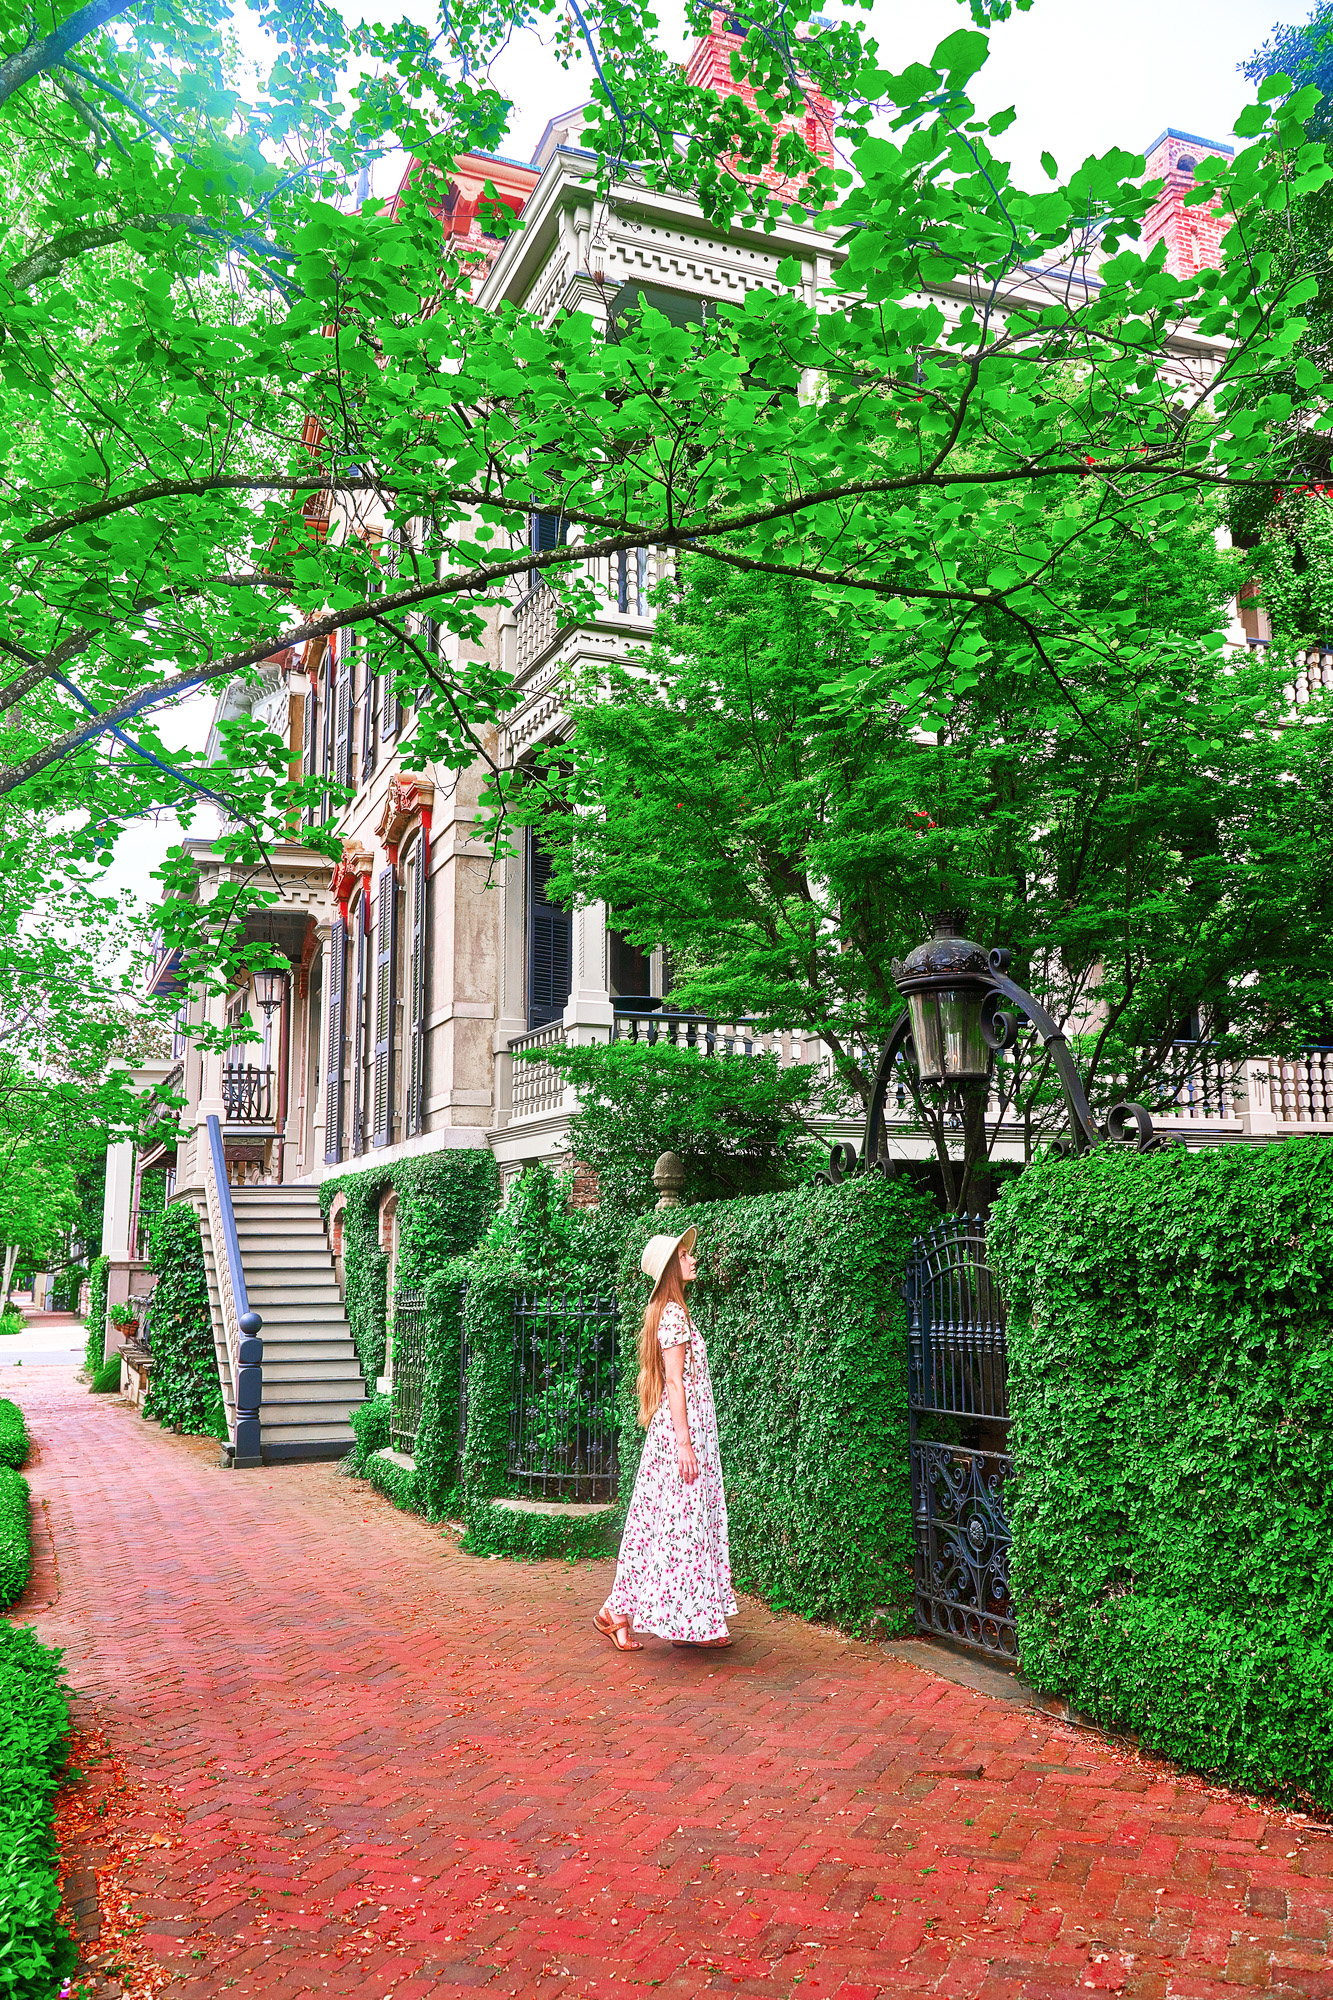 A woman in a white floral maxi dress, with long hair, wearing a white sunhat standing on a brick cobblestone sidewalk. She is looking up at a building that is out of the frame. Standing in front of a wrought iron gate covered in ivy. In the background you can see several historic homes down the street.